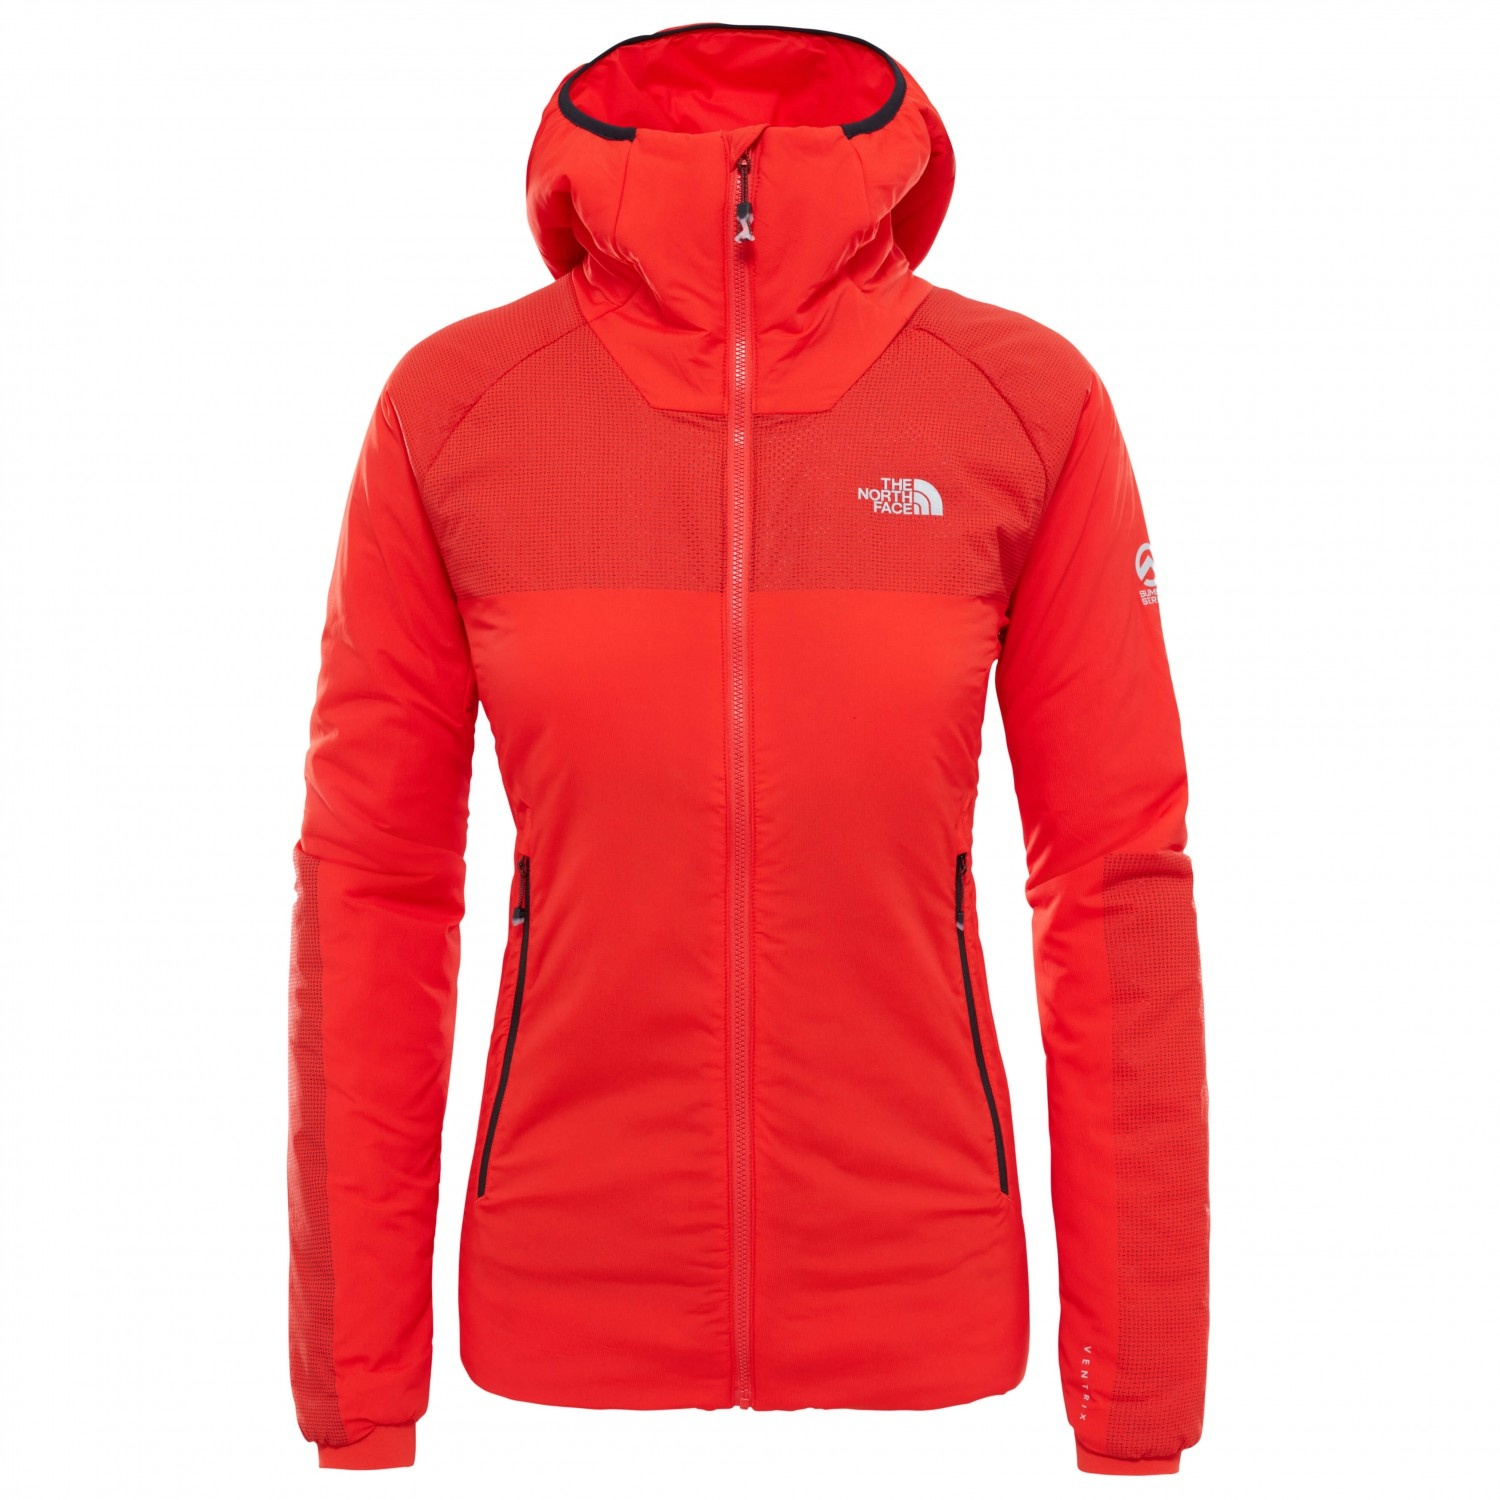 THE NORTH FACE NorthFace Women's L3 Ventrix Hoodie